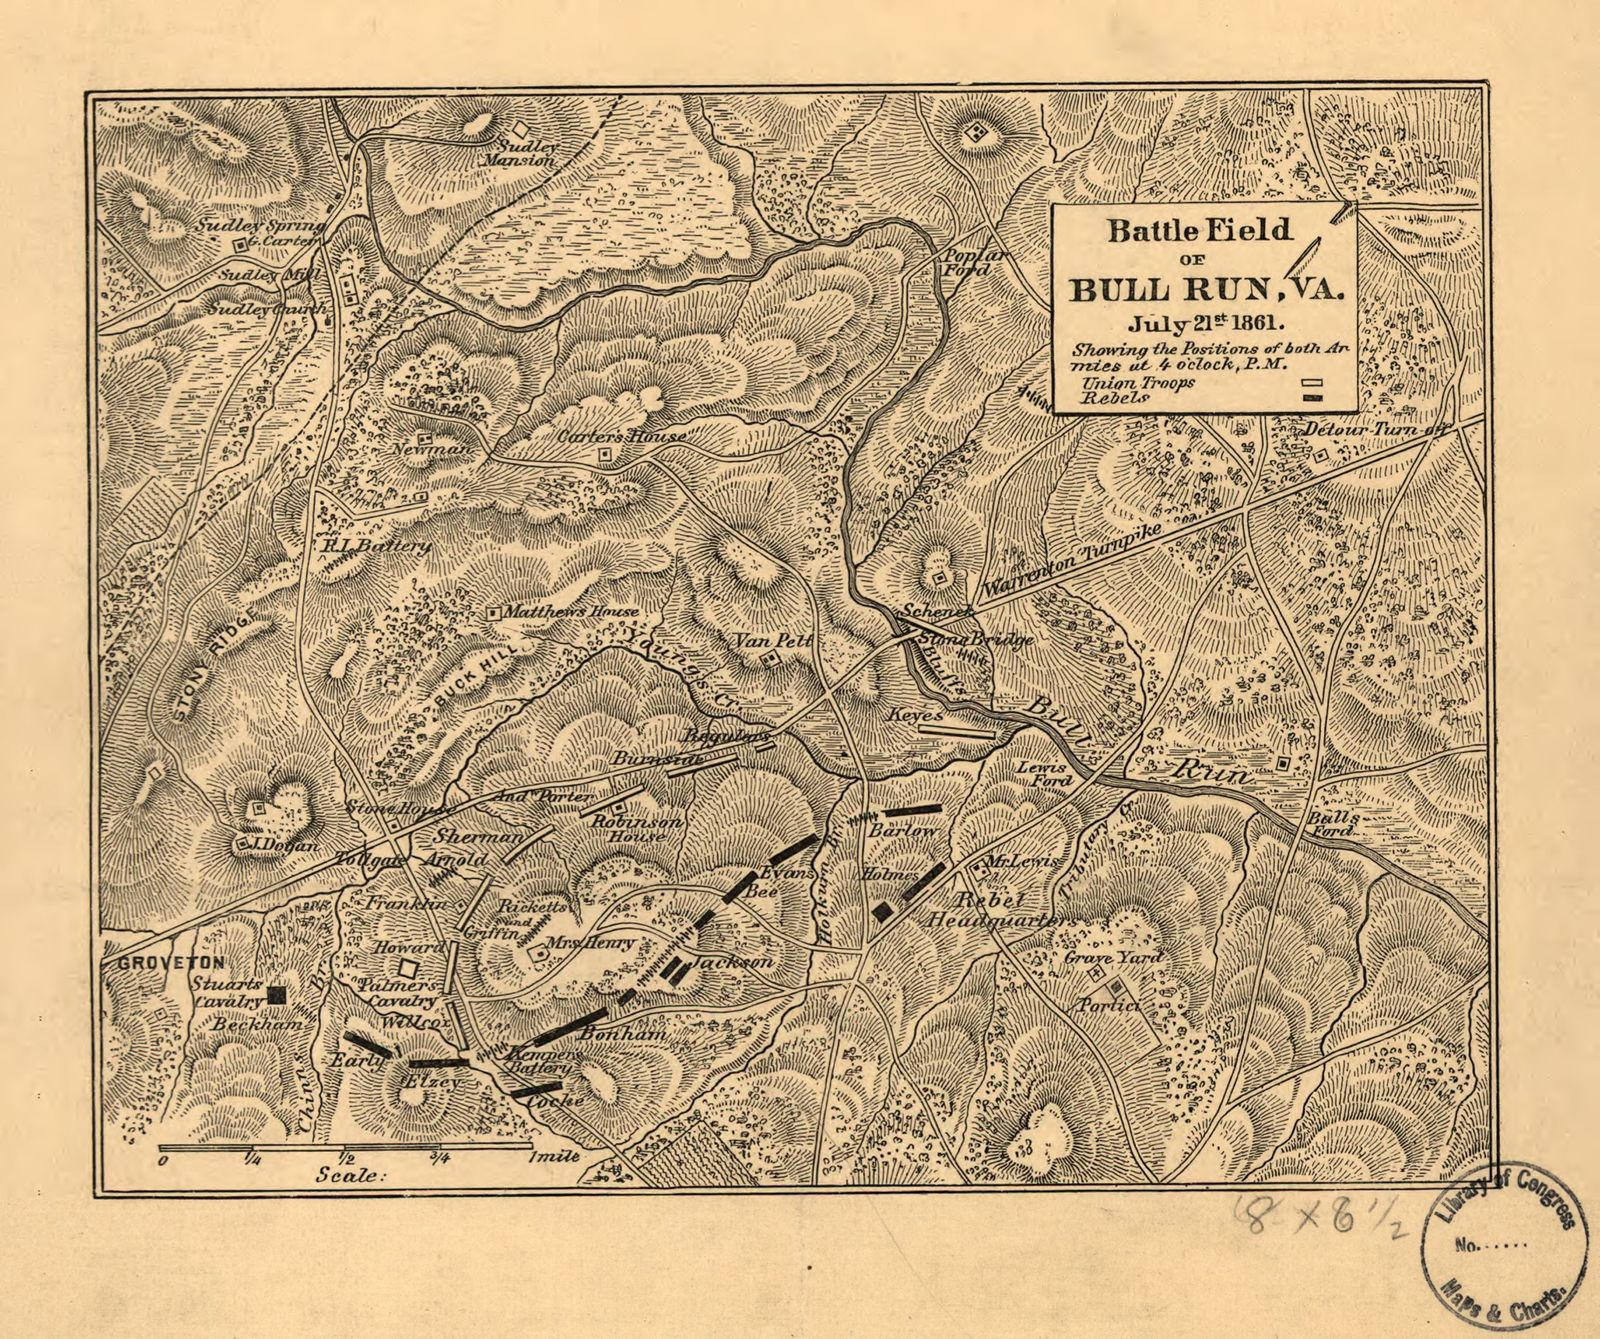 Battle field of Bull Run, Va. July 21st 1861. Showing the positions of both armies at 4 o'clock, P.M.